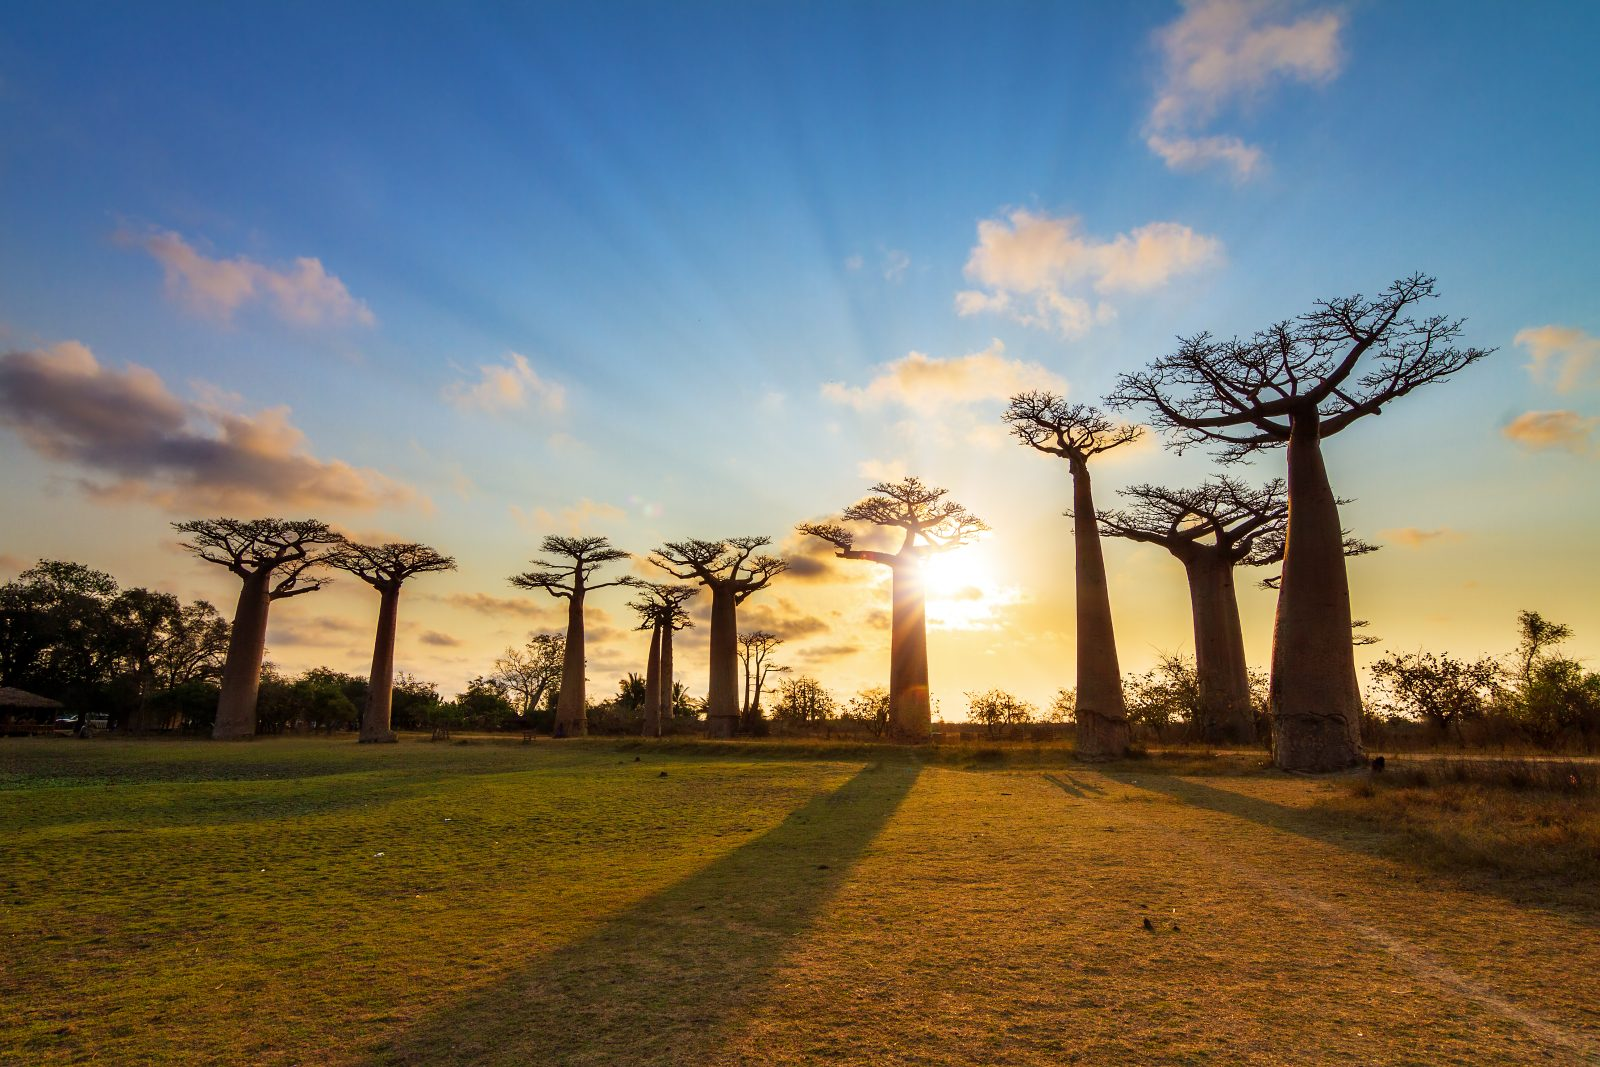 Avenue of Baobabs 2